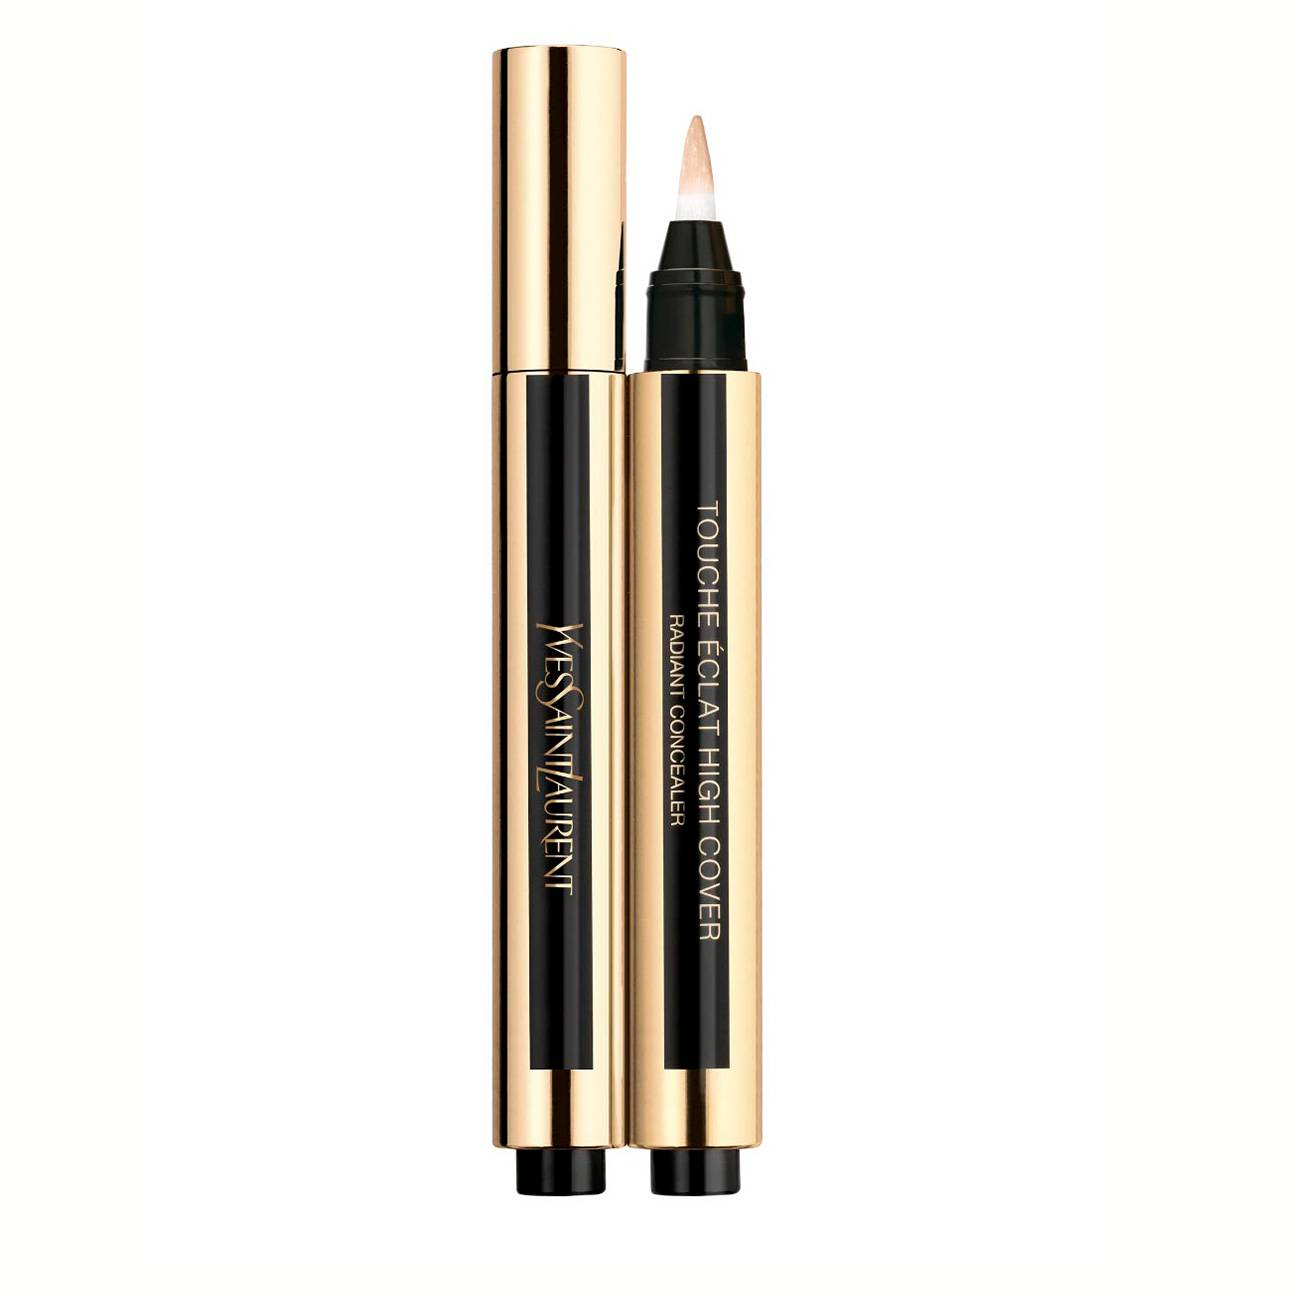 Touche Éclat Concealer 0.75 2.5ml Yves Saint Laurent imagine 2021 bestvalue.eu